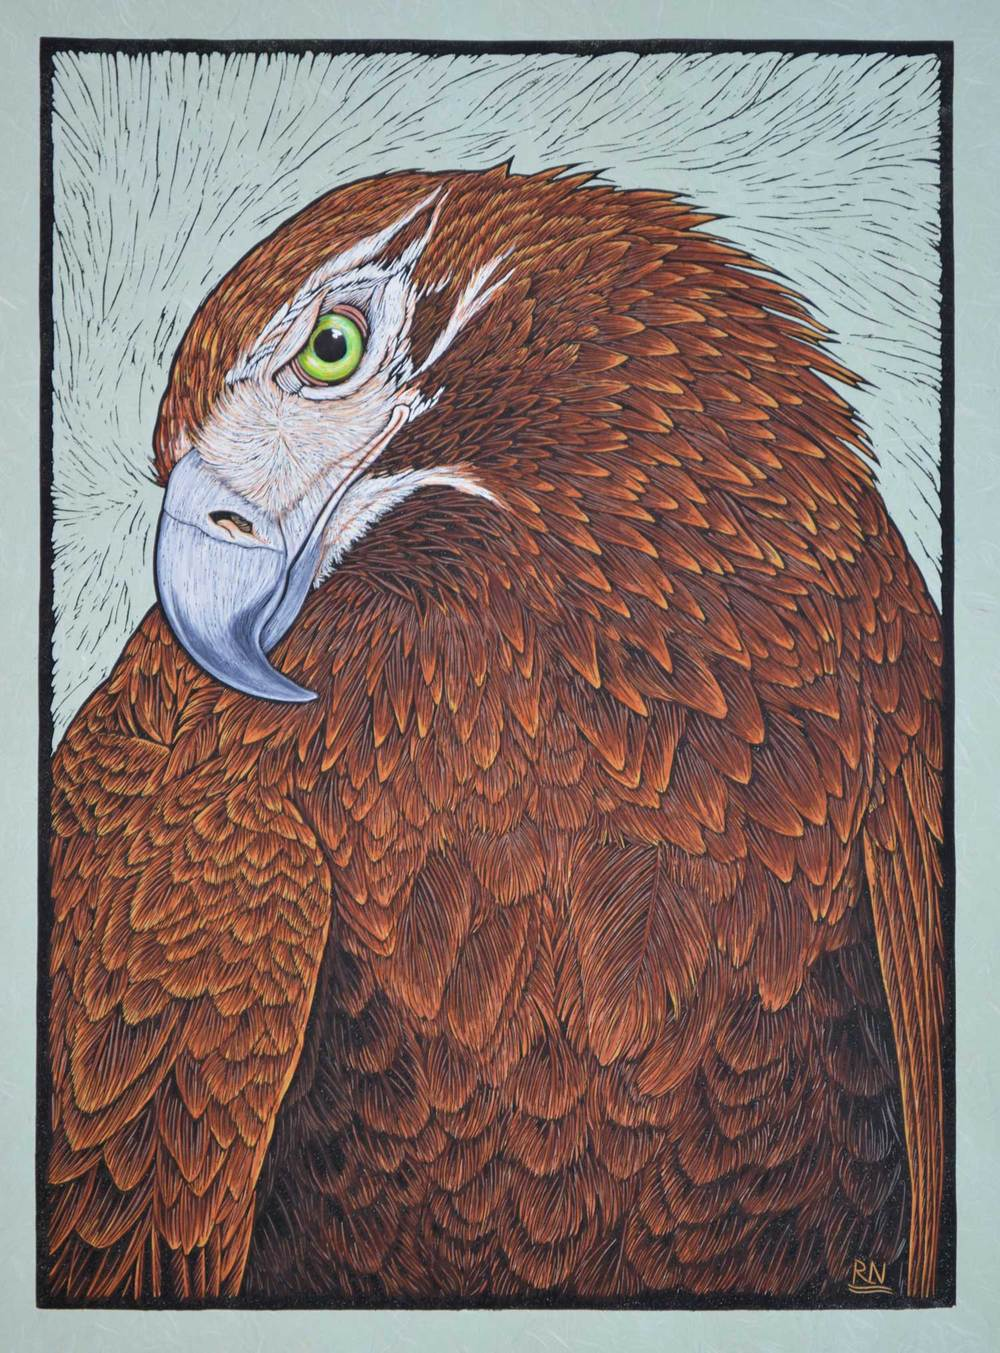 WEDGE TAILED EAGLE  51.5 X 37 CM    EDITION OF 50  HAND COLOURED LINOCUT ON HANDMADE JAPANESE PAPER  $1,100